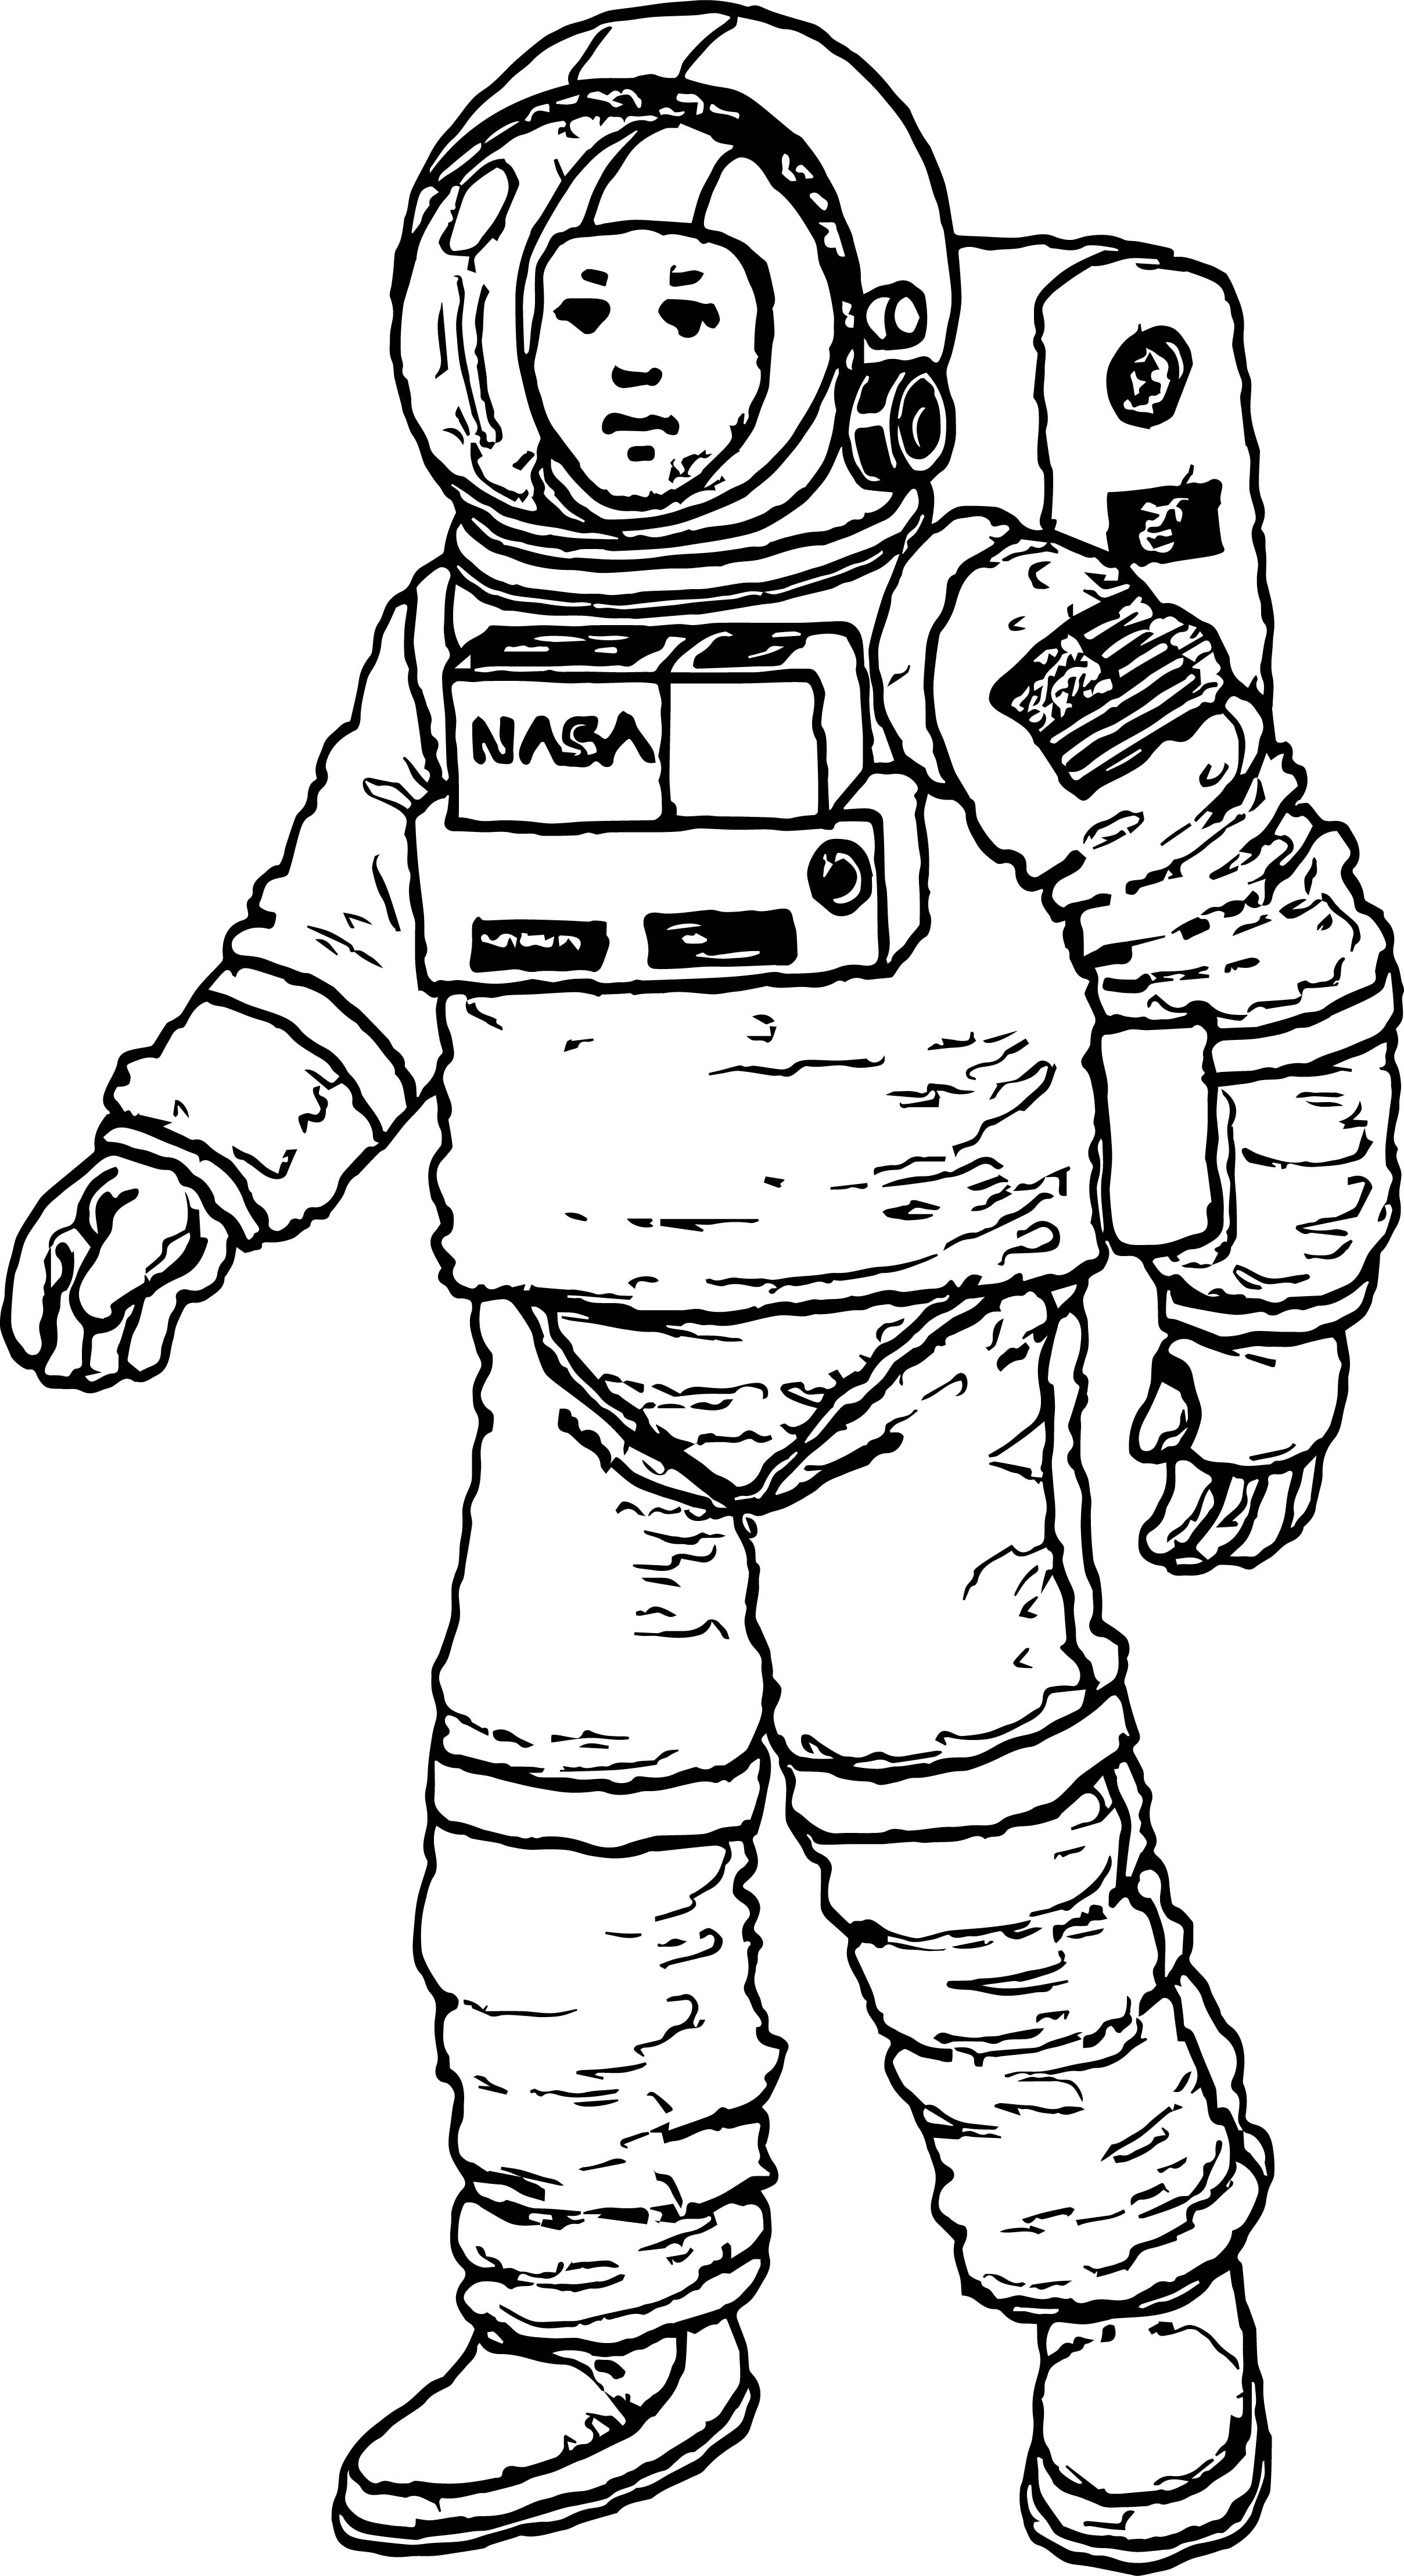 astronaut coloring for kids astronaut nasa coloring page wecoloringpagecom kids astronaut coloring for